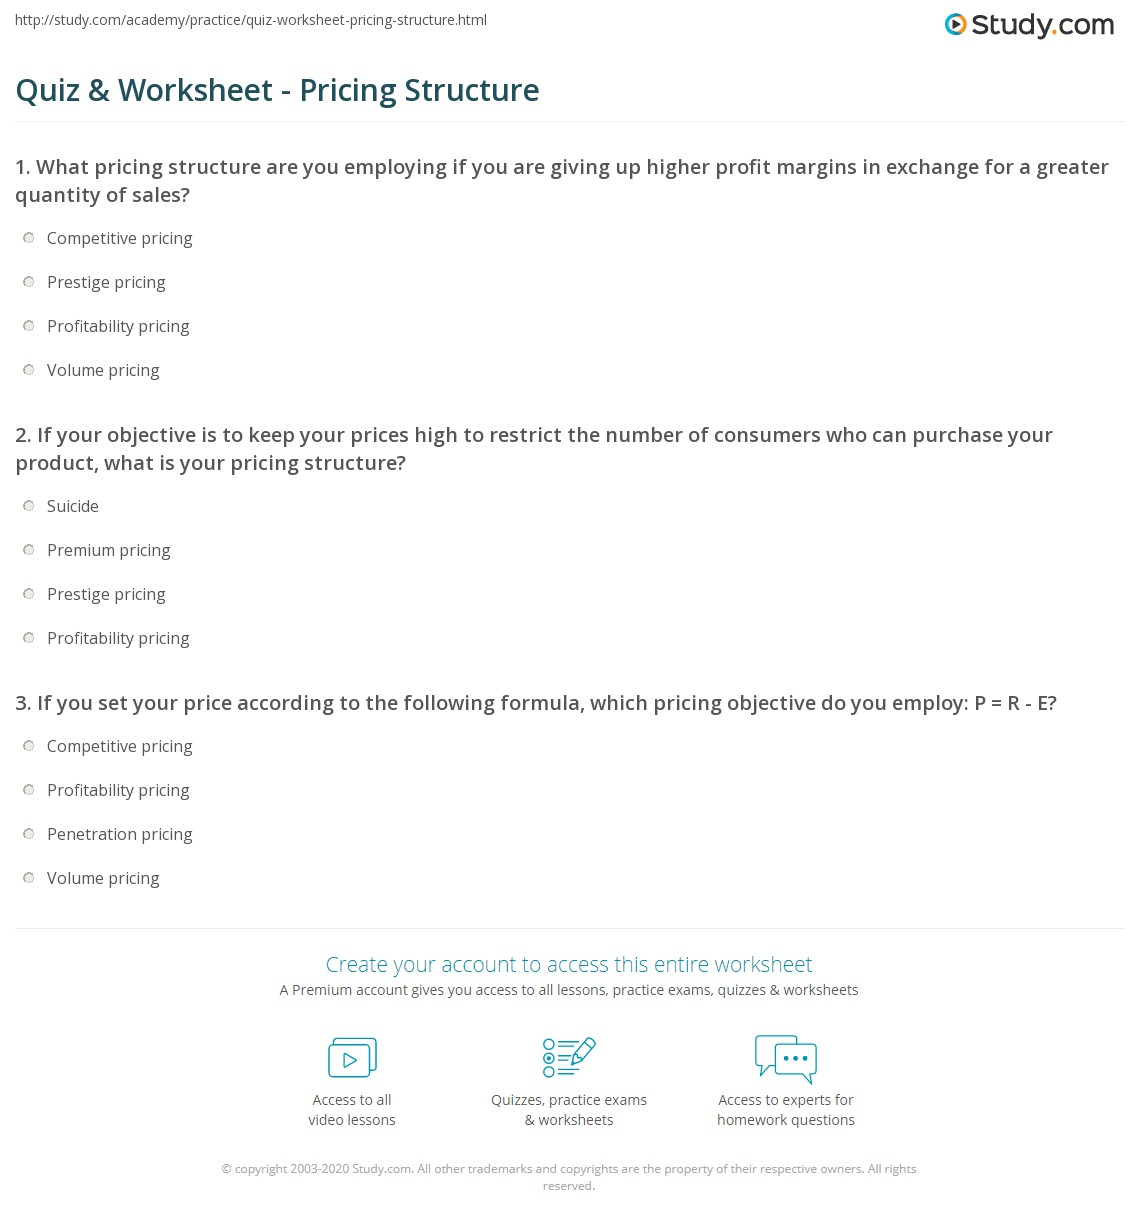 Pricing Structure: Quiz & Worksheet - Pricing Structure